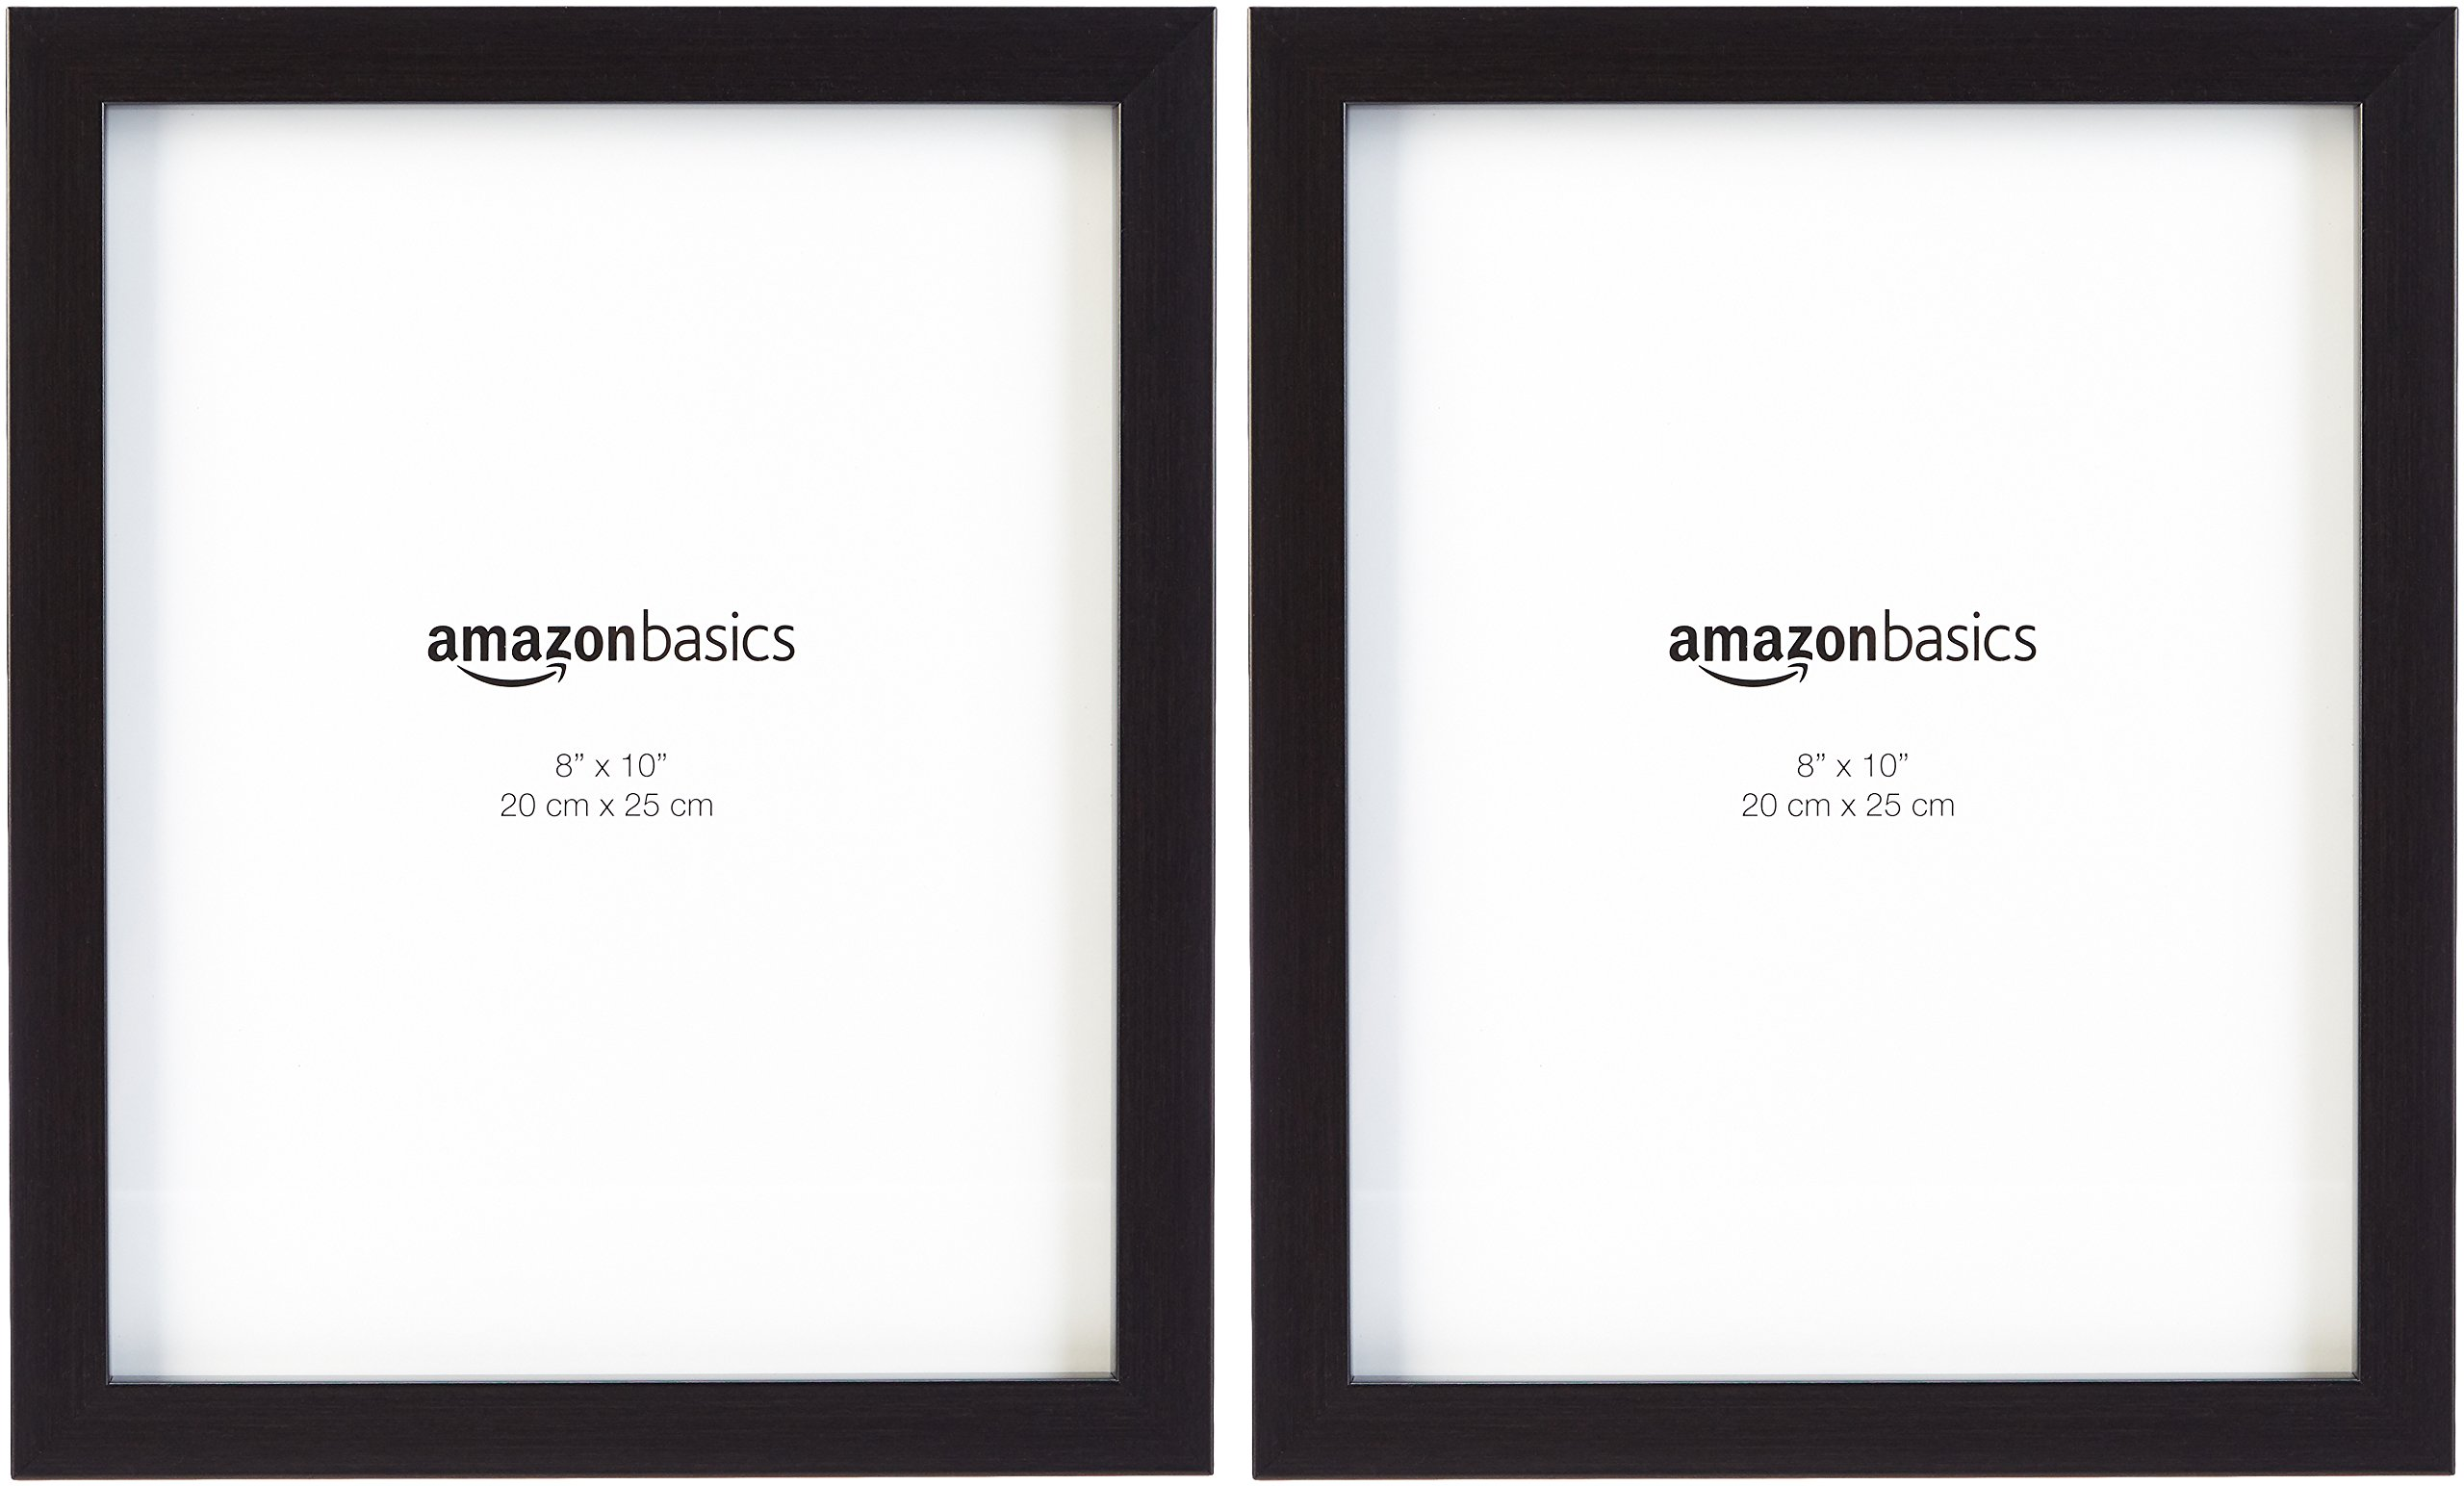 AmazonBasics Photo Picture Frame - 8'' x 10'', Black, 2-Pack by AmazonBasics (Image #3)